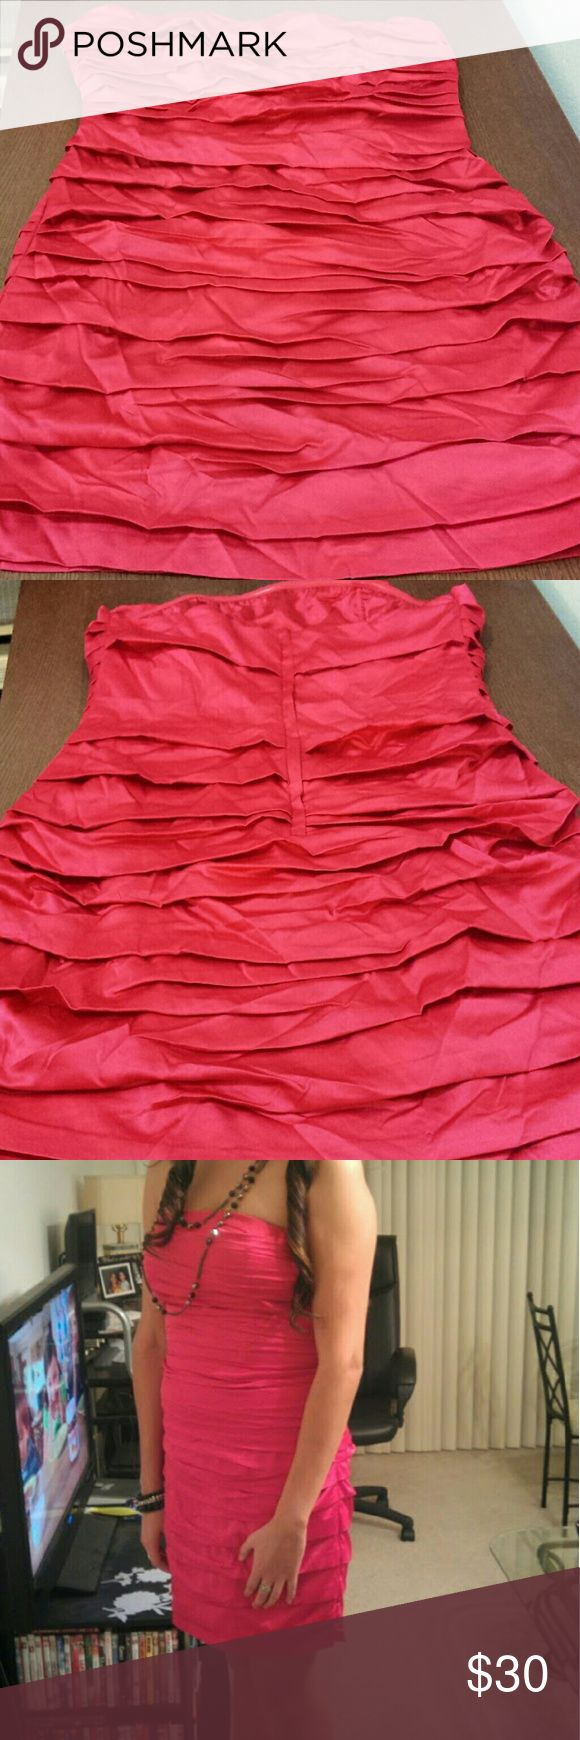 Strapless Layered Red Dress Hidden zipper in good condition  No snags, also have straps to go with it, never used them. Lenght 27 in Wore once to a New Year's Eve Party Express Dresses Strapless